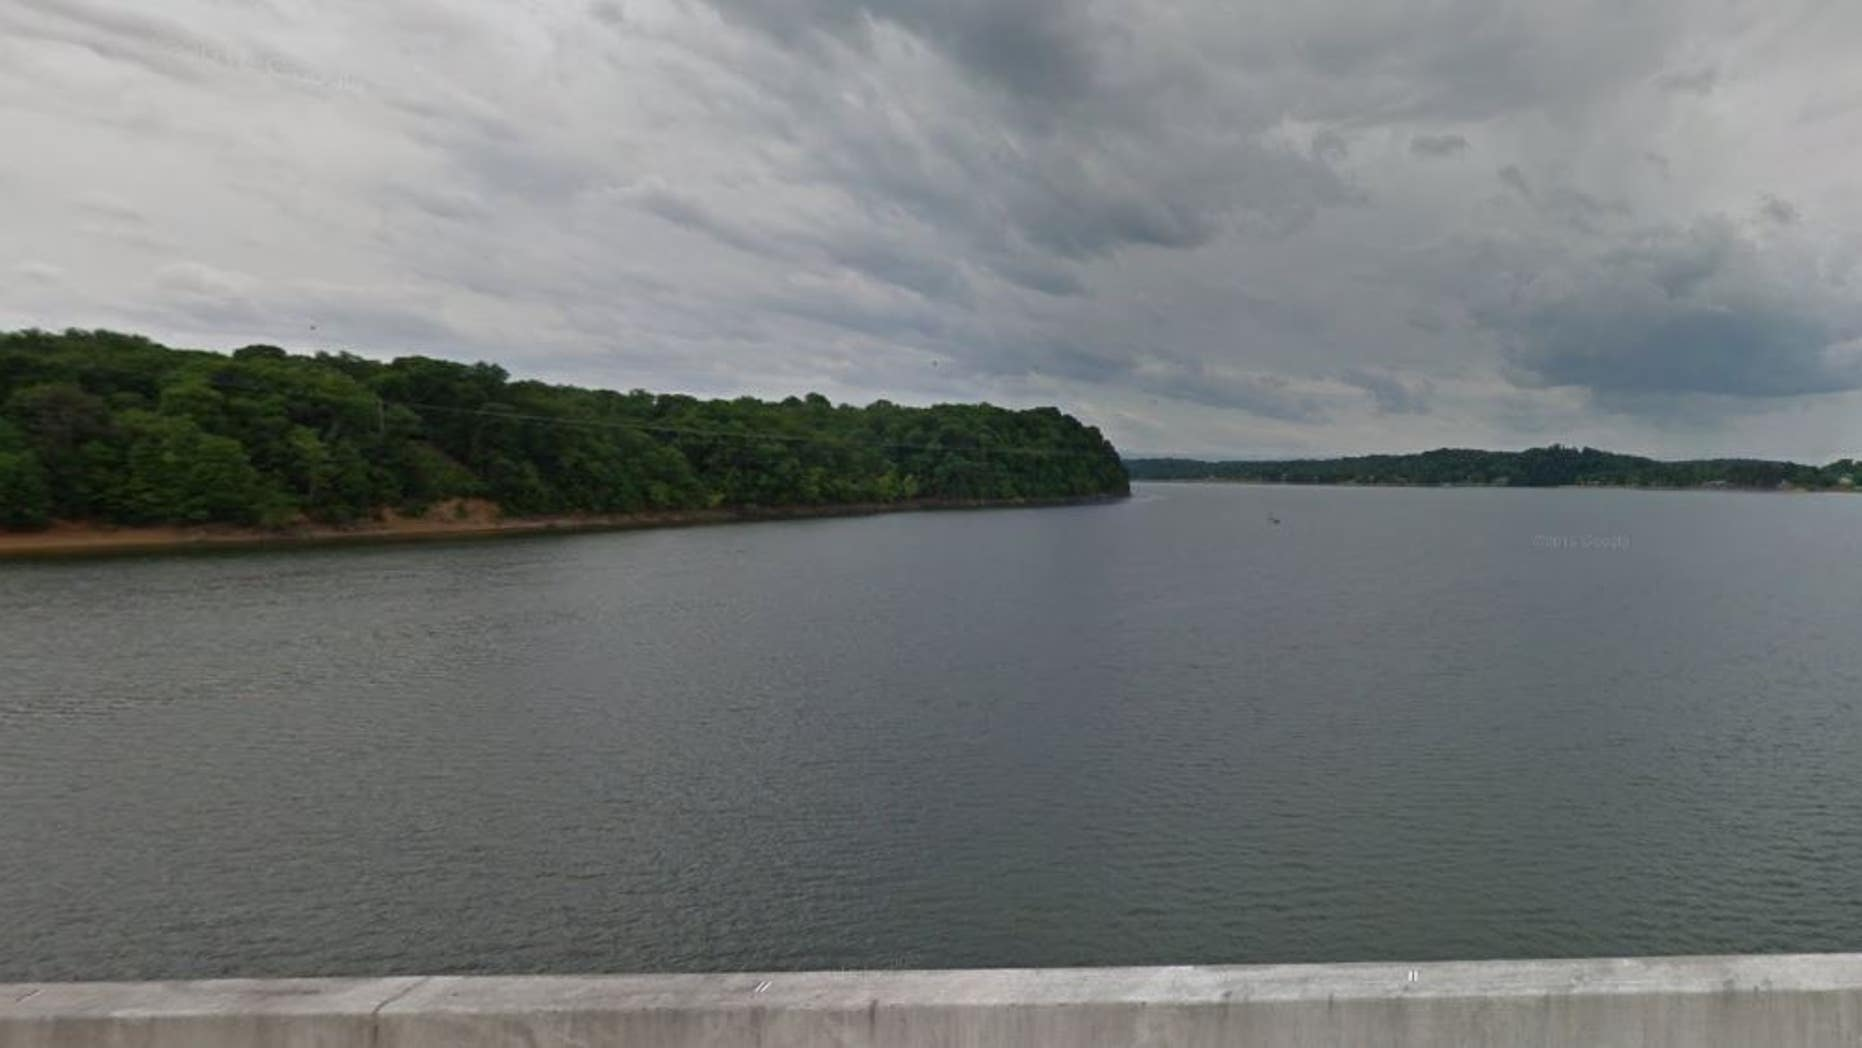 An 11-year-old girl reportedly came across a fossil that's 475 million years old on the banks of Douglas Lake in Tennessee.